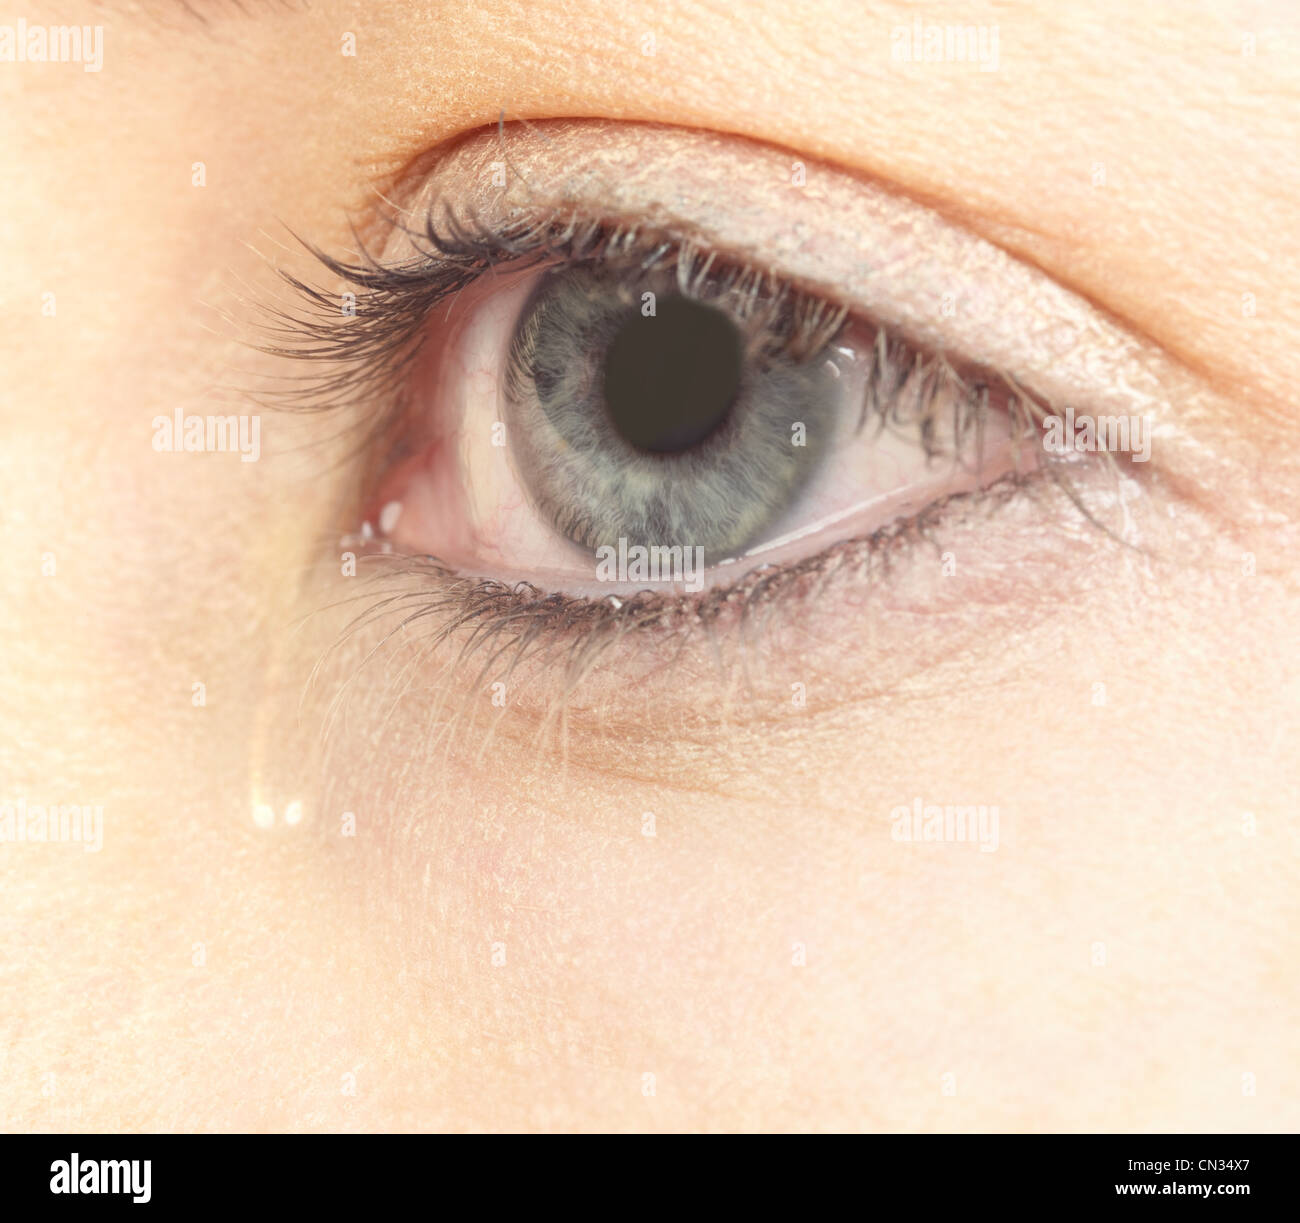 Tearful eye - Stock Image